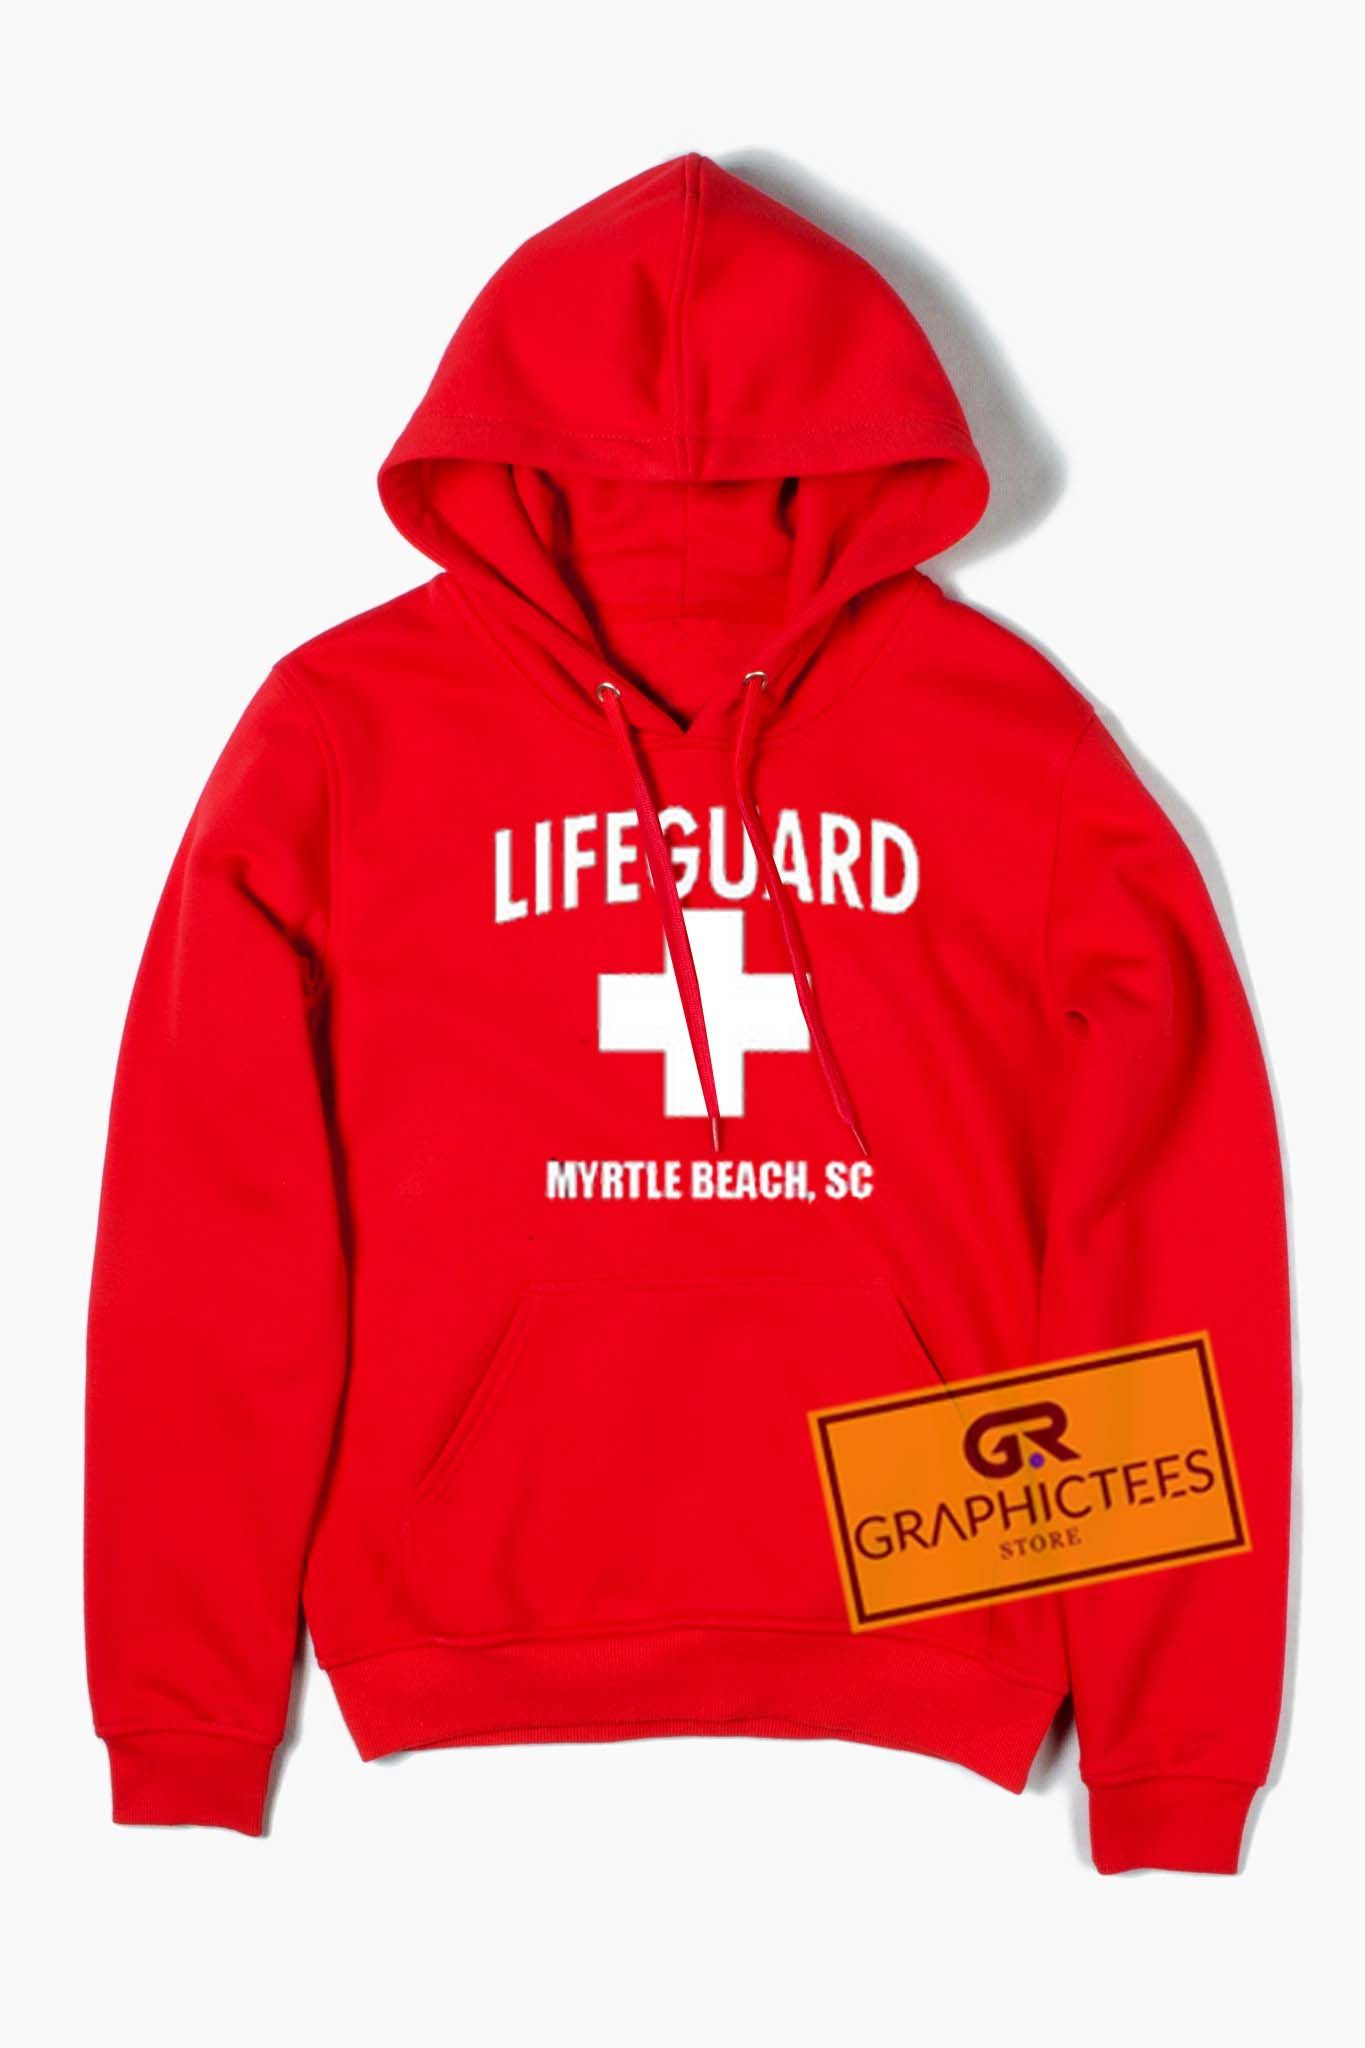 fdeb0f795153 Life guard myrtle beach red hoodie graphic tees price graphic tees for men  jpg 1365x2048 Lifeguard